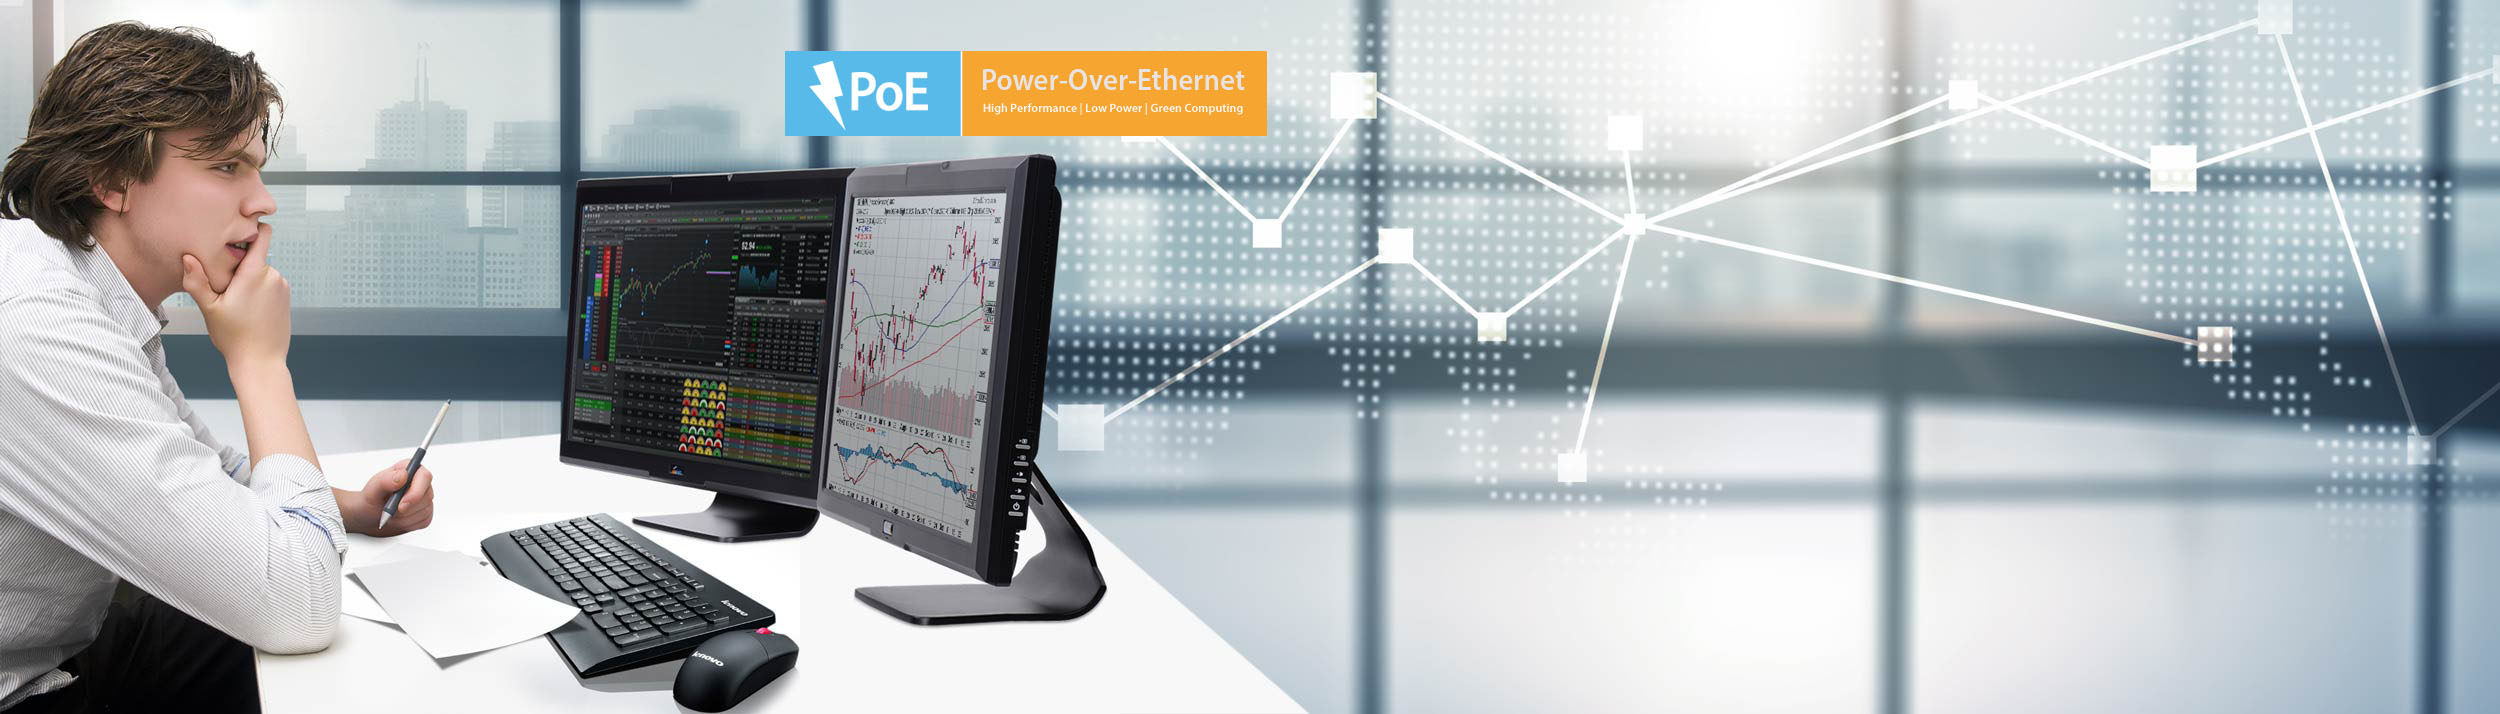 ARGUS Zero Footprint Integrated Smart Clients - Dual Display Support for Financial Solutions